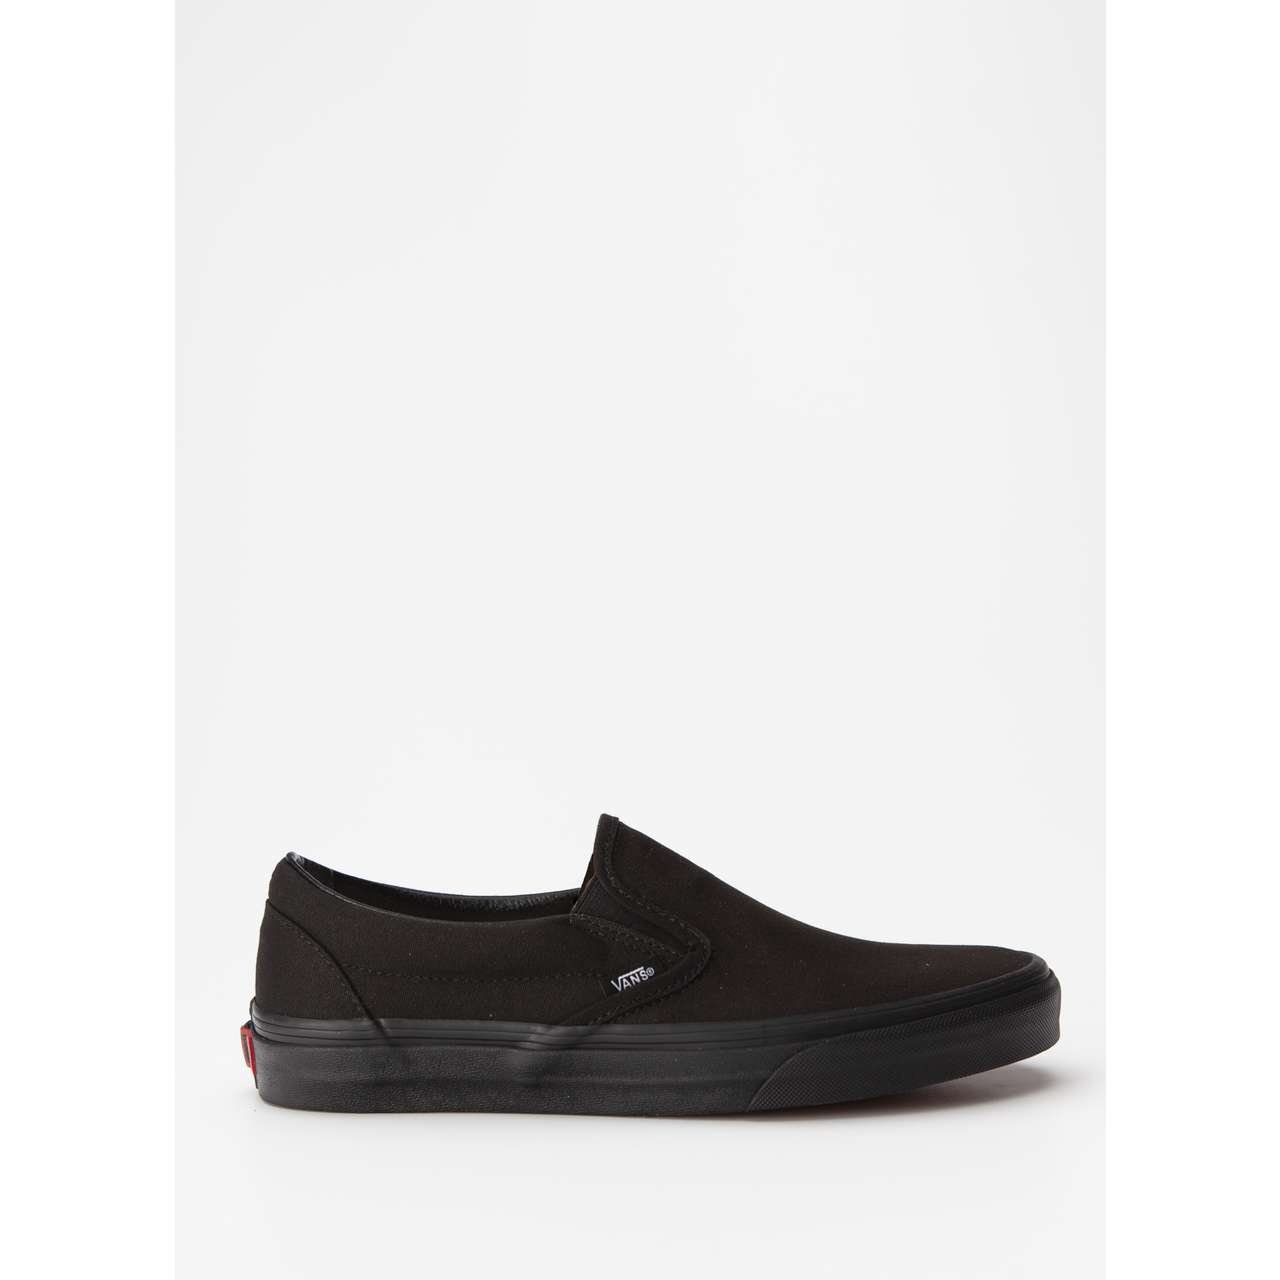 bb5a6264396a vans slip on na nodze rabat